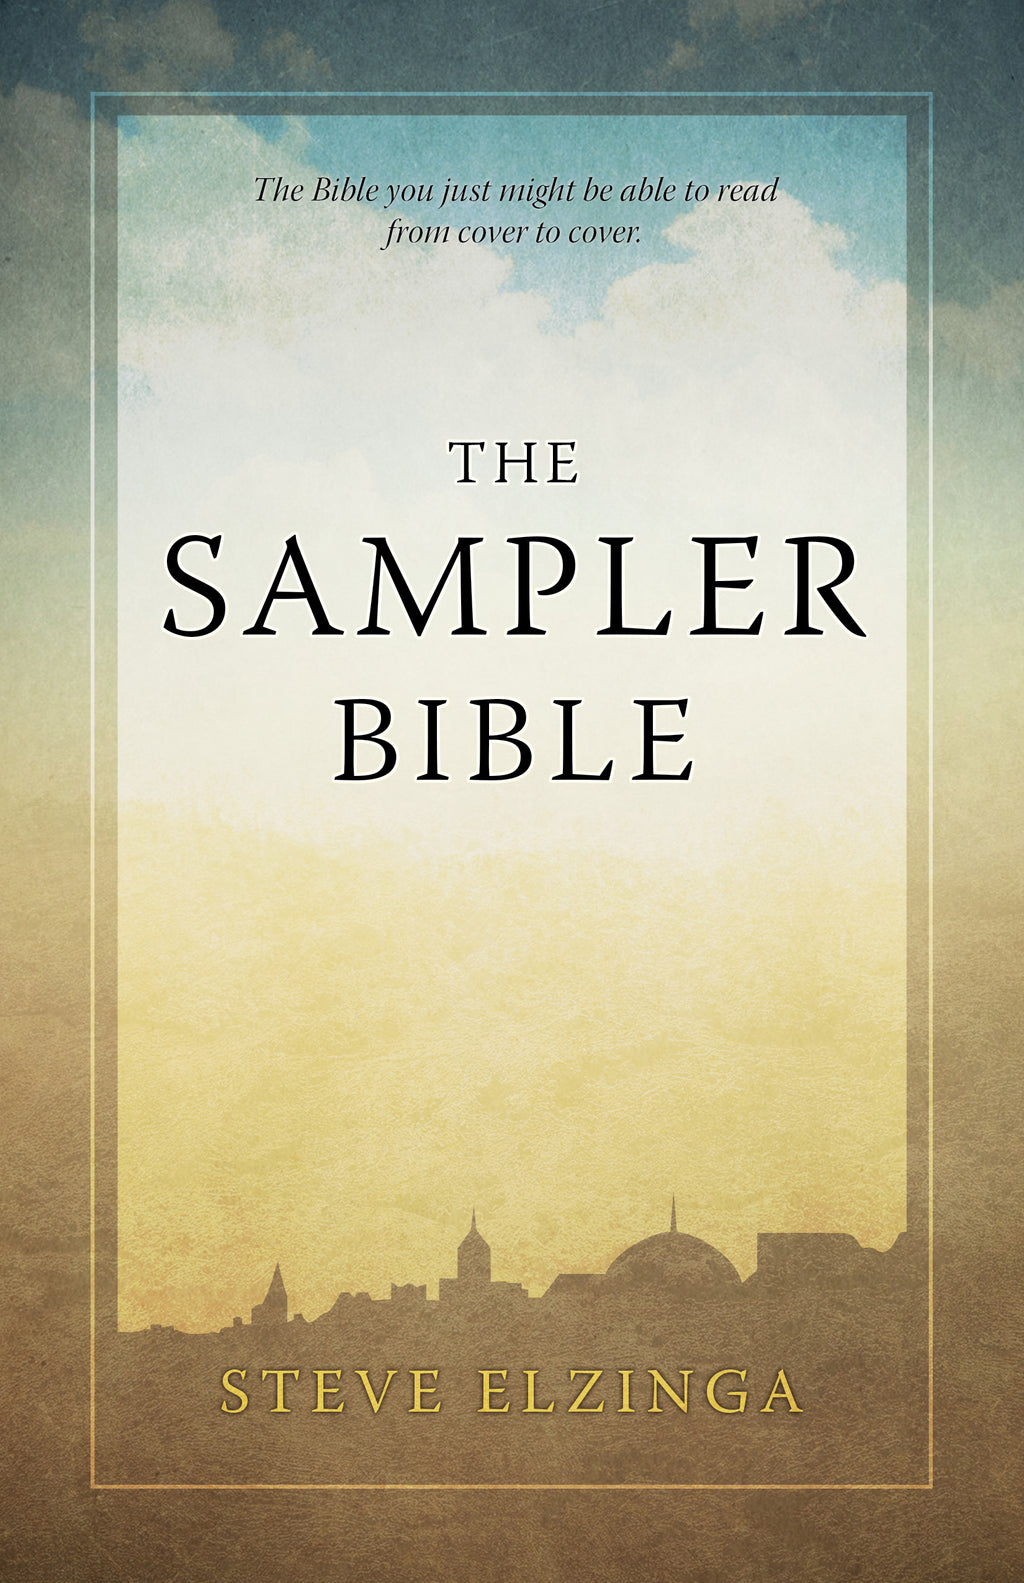 The Sampler Bible